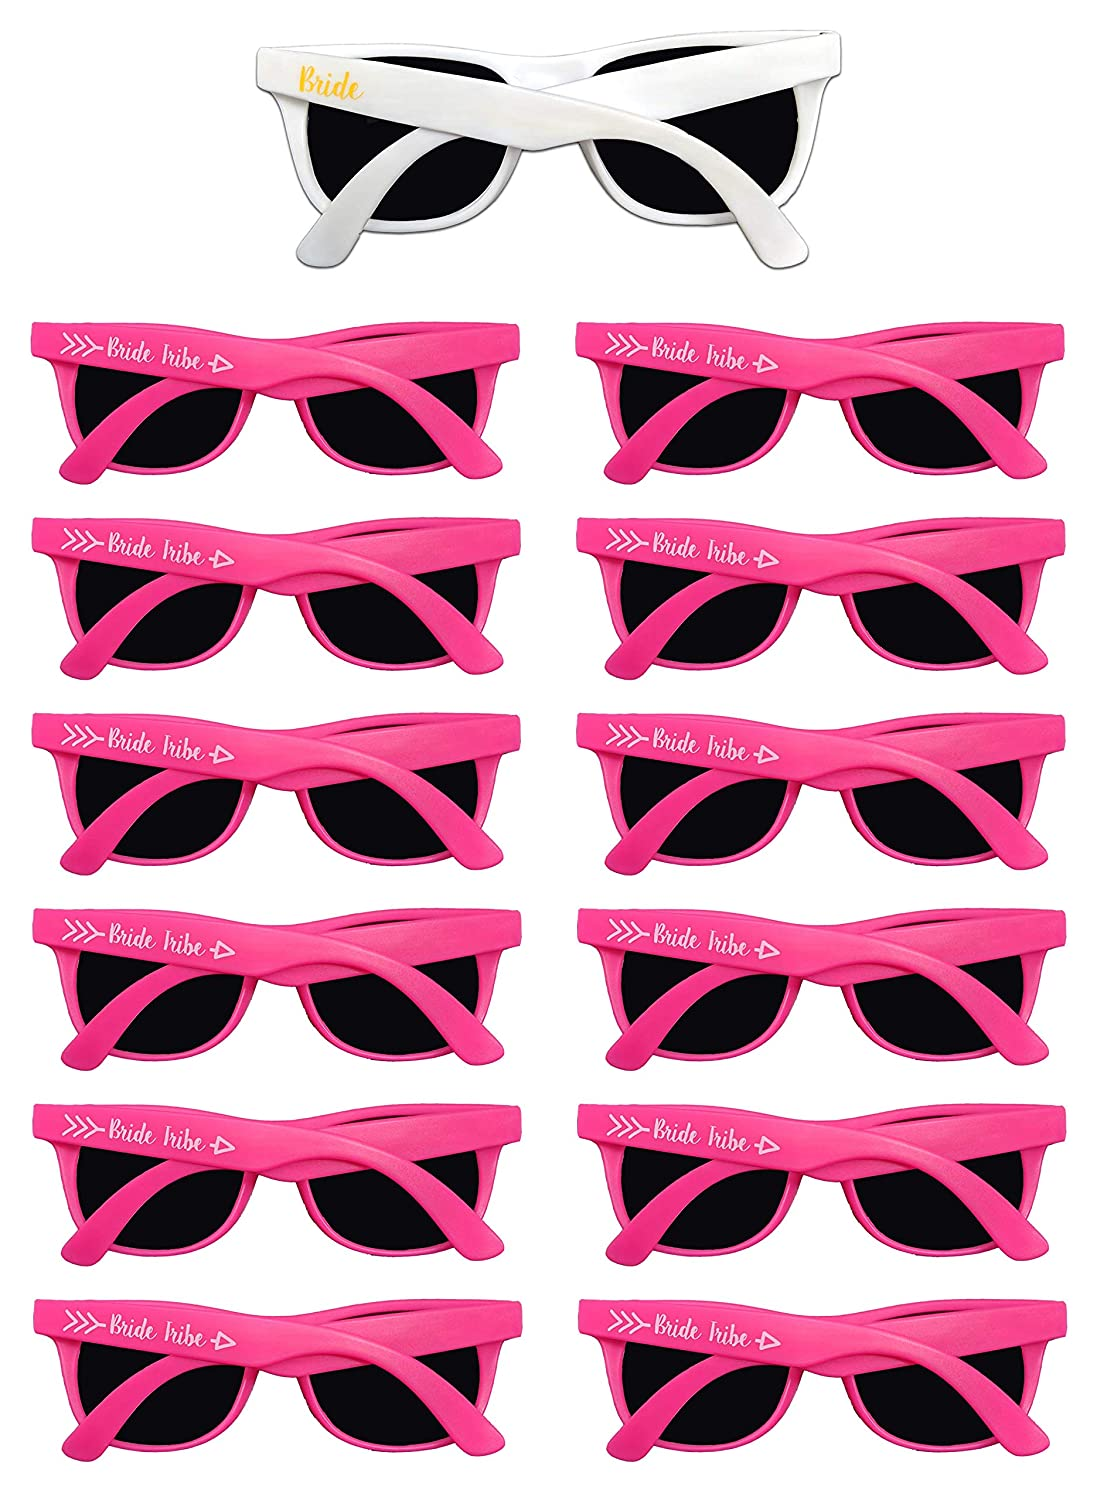 Amazon.com: Gafas de sol Bachelorette Party - 12 unidades de ...